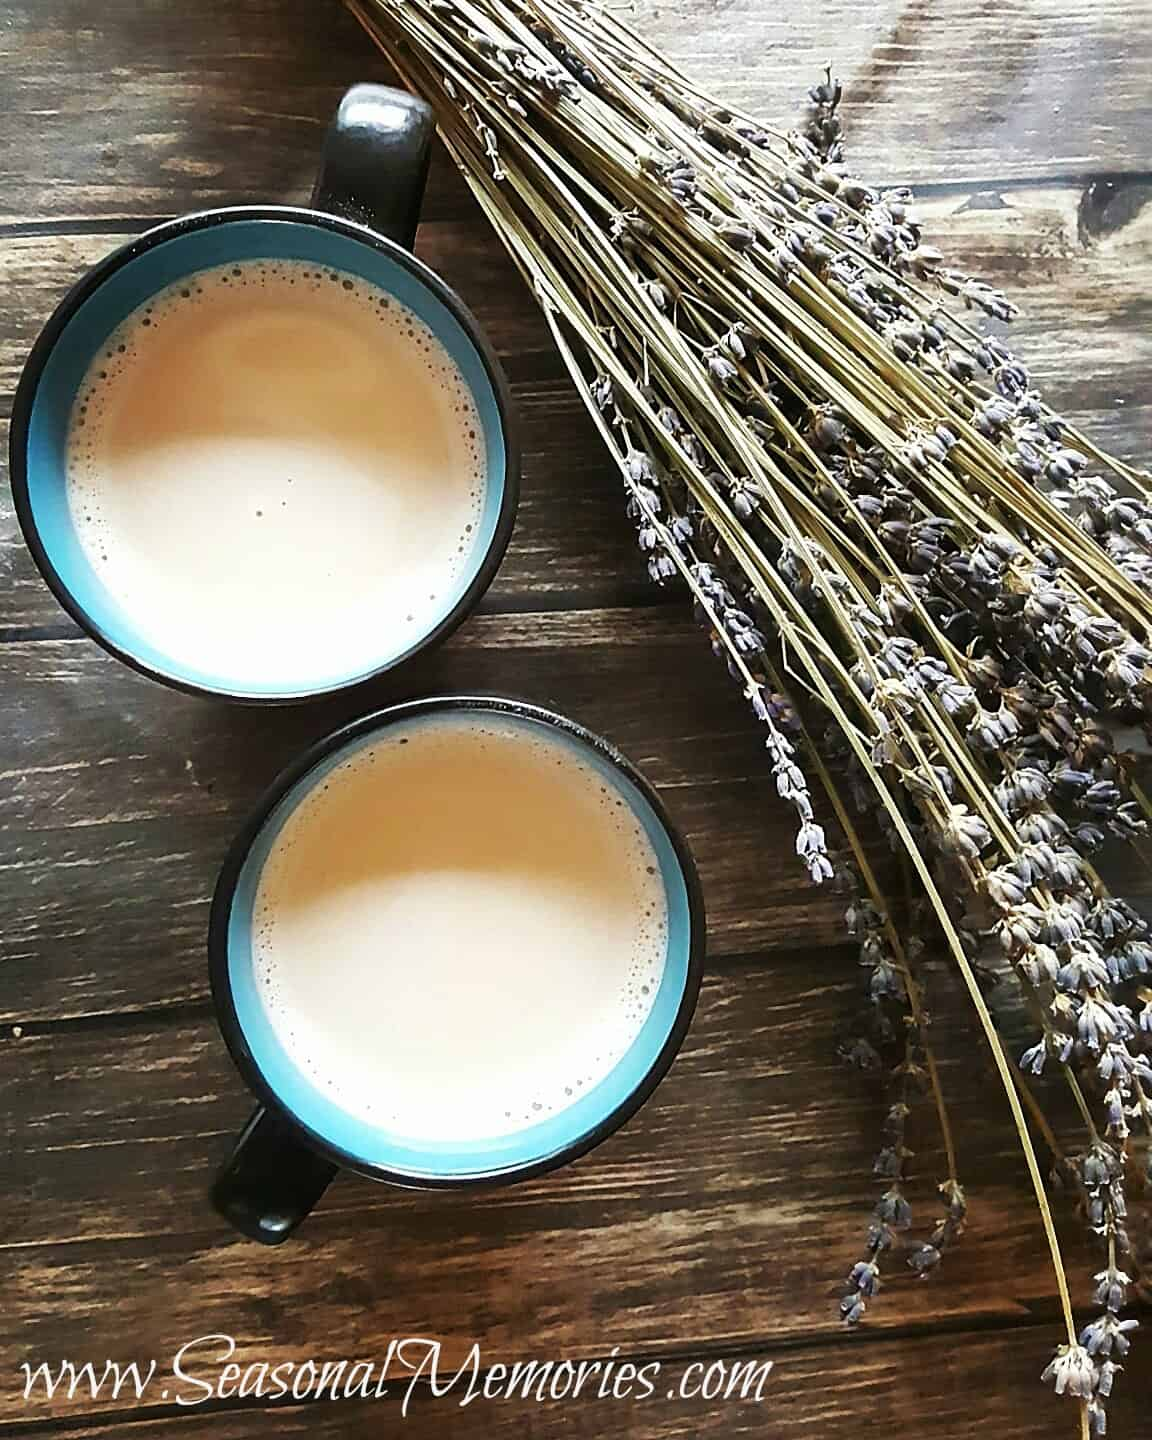 Lattes With Homemade Lavender Simple Syrup #ad #ElGatoMaloPress